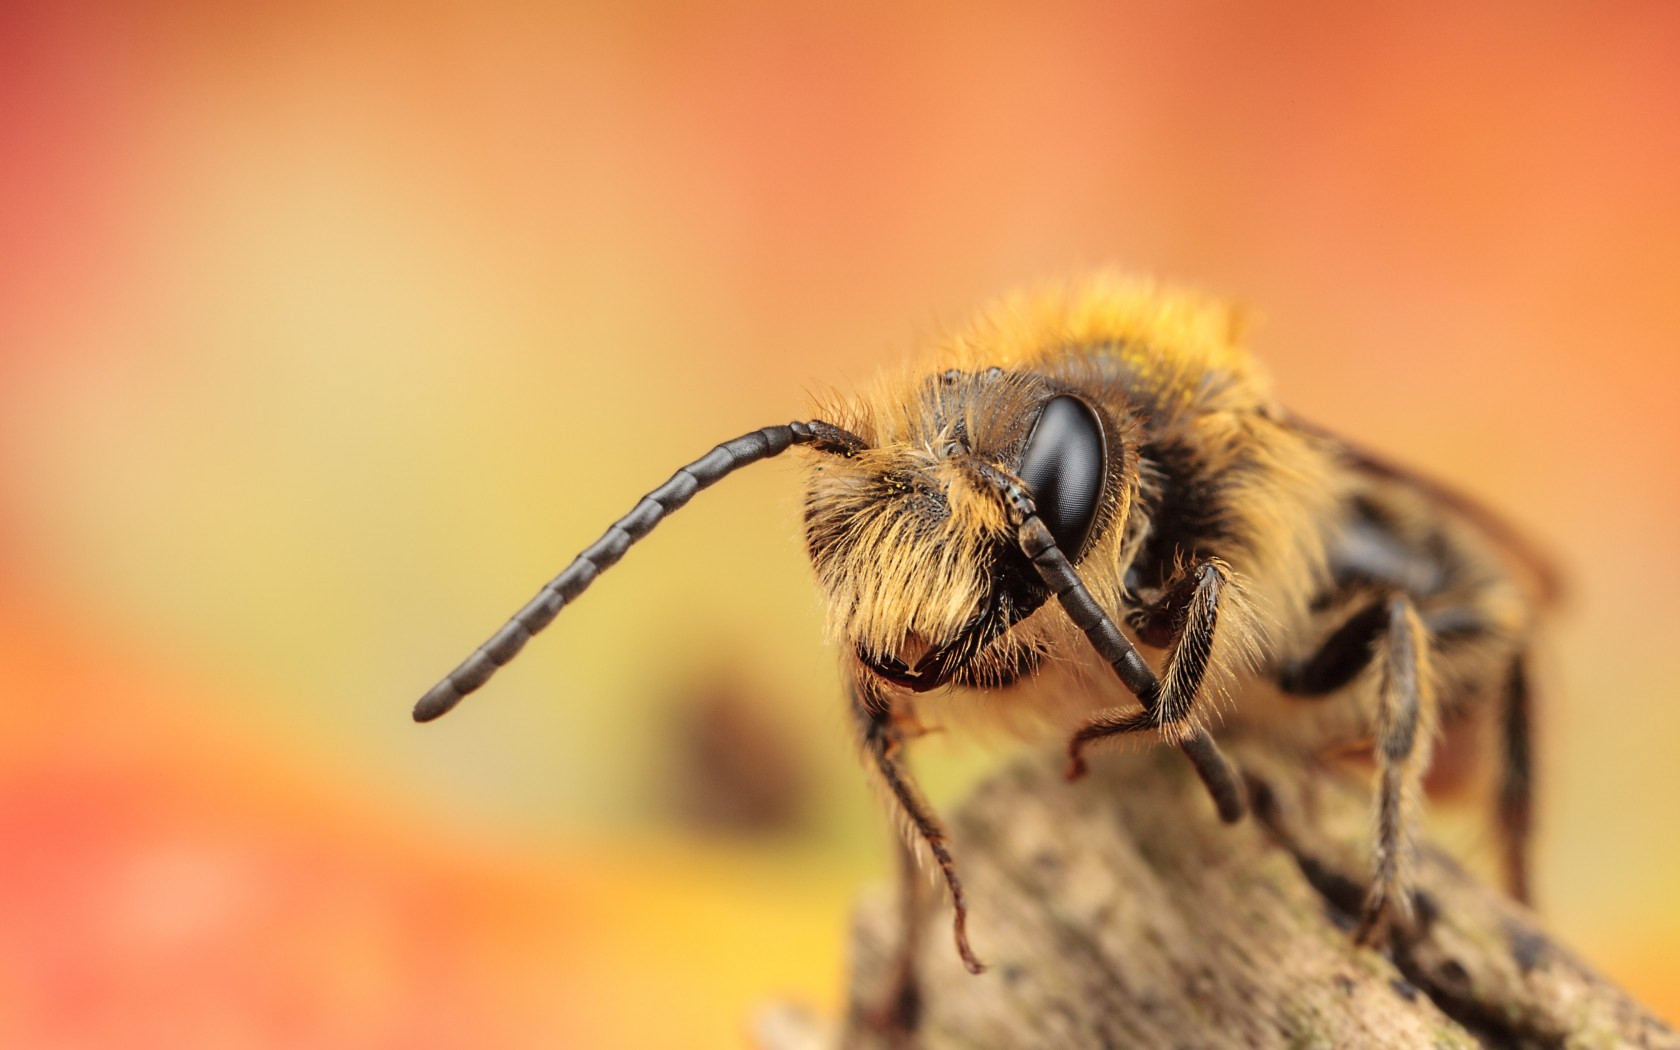 Bees Wallpapers for Walls Wonderful Bee Wallpapers Cartoon Hq Bee